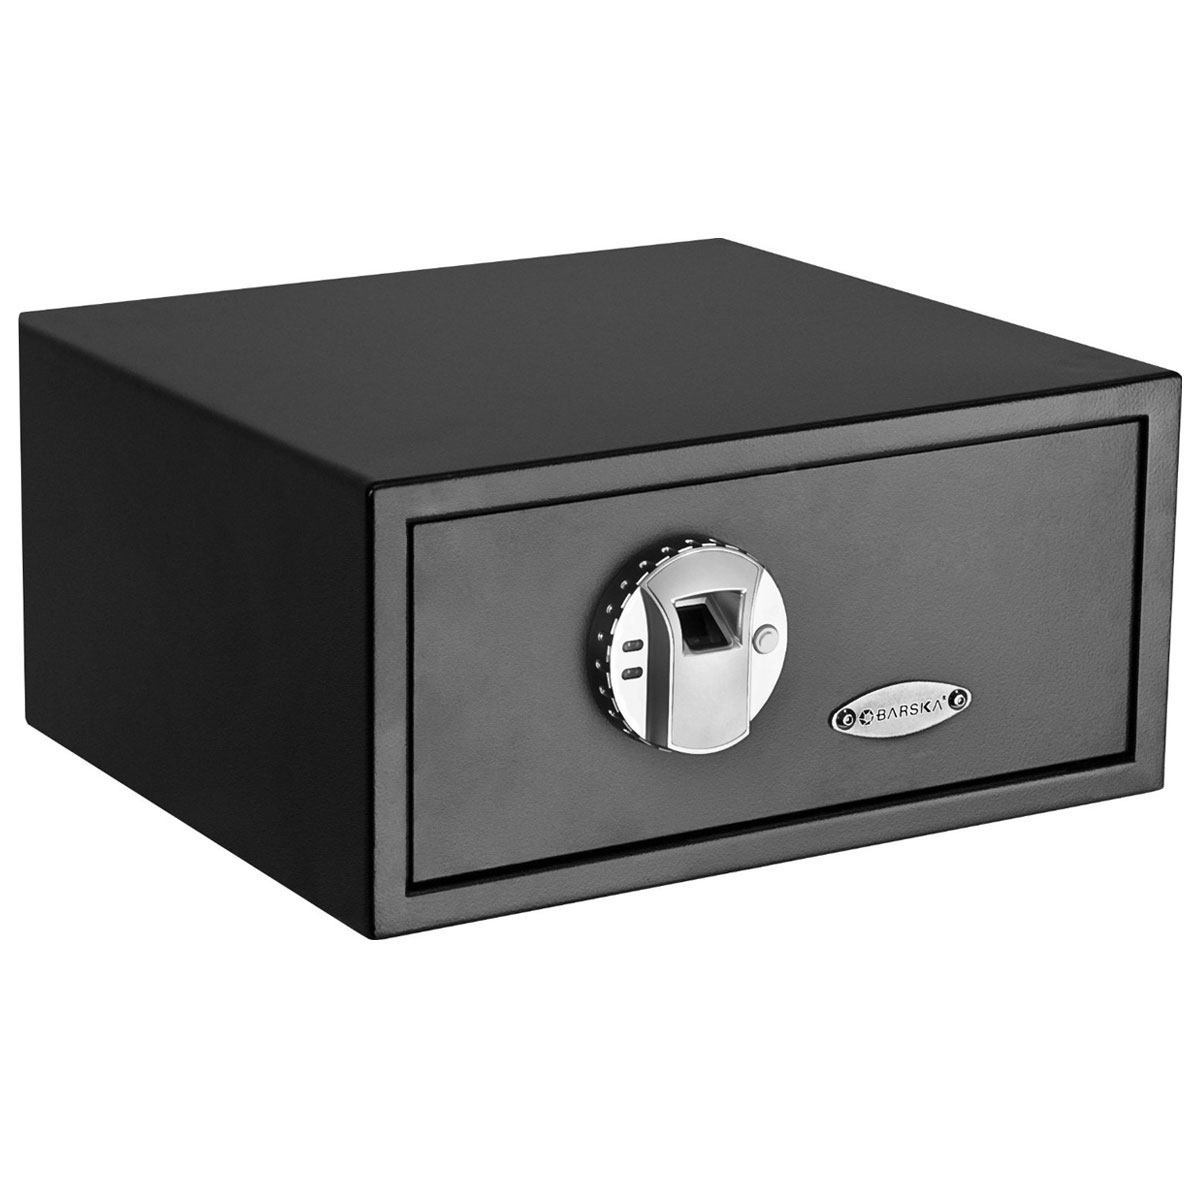 Best Biometric Gun Safe 2021